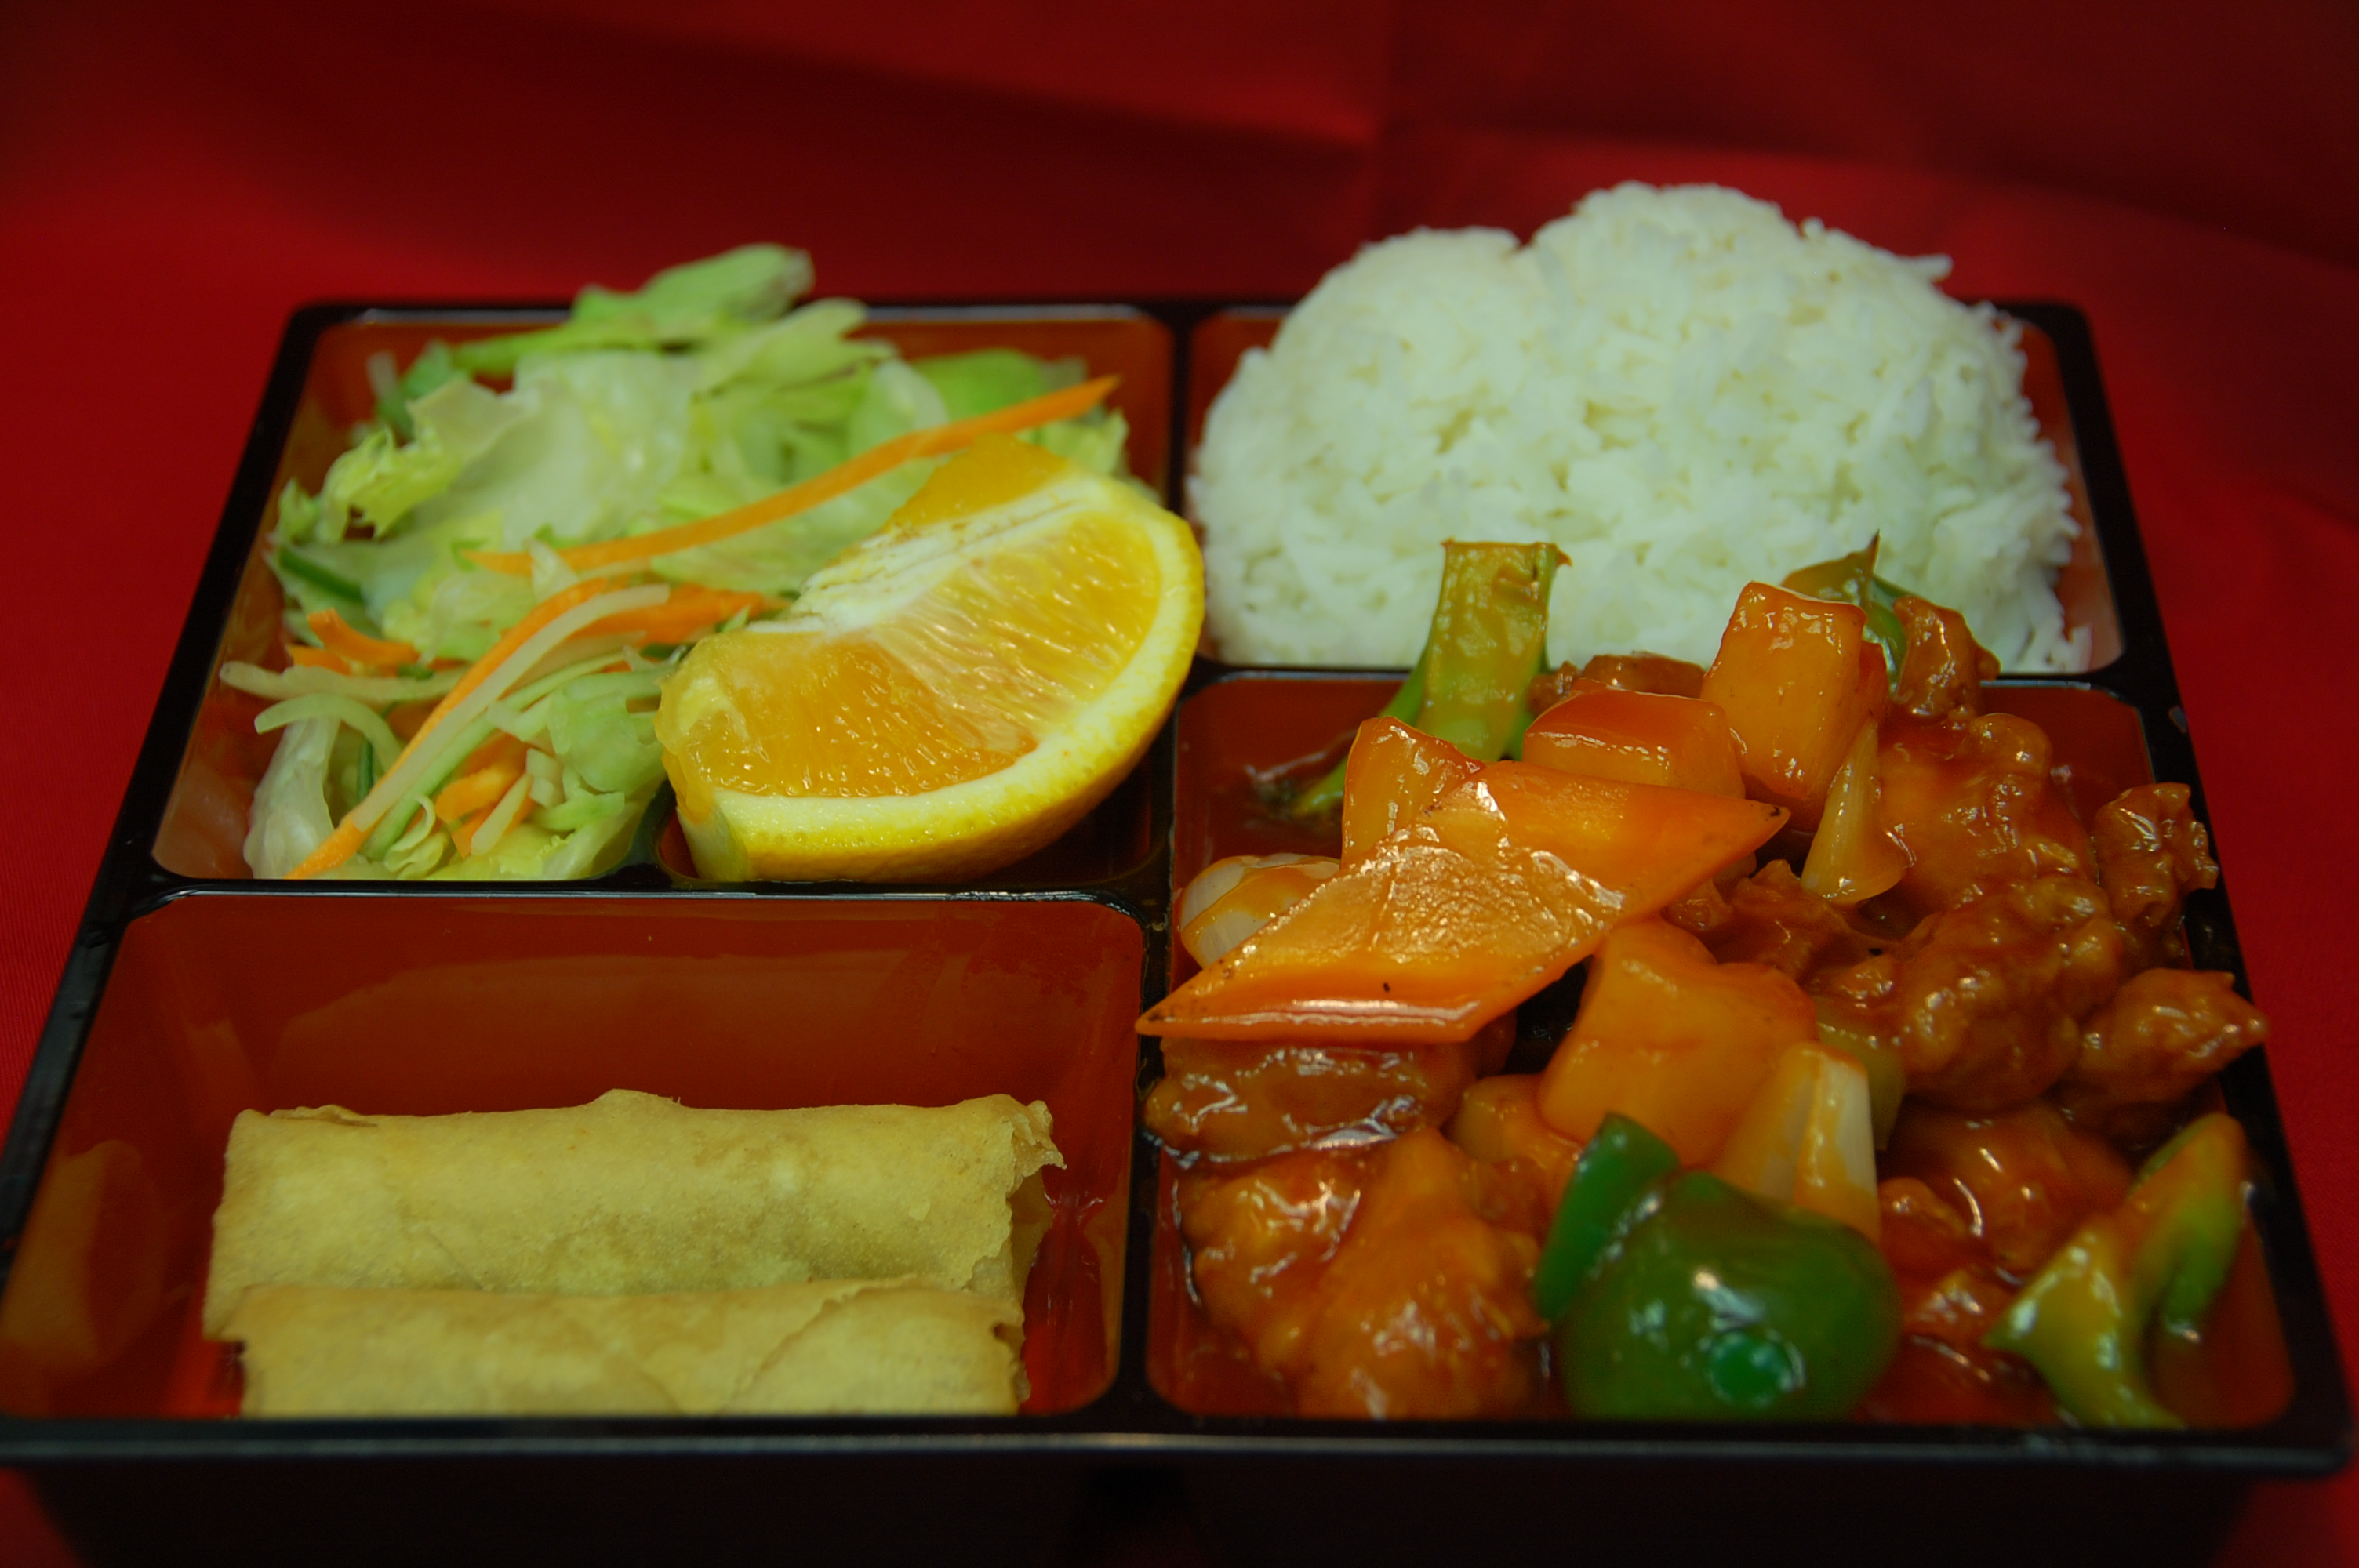 bento box filled with rice, egg rolls, salad and chicken sweet & sour with vegetables